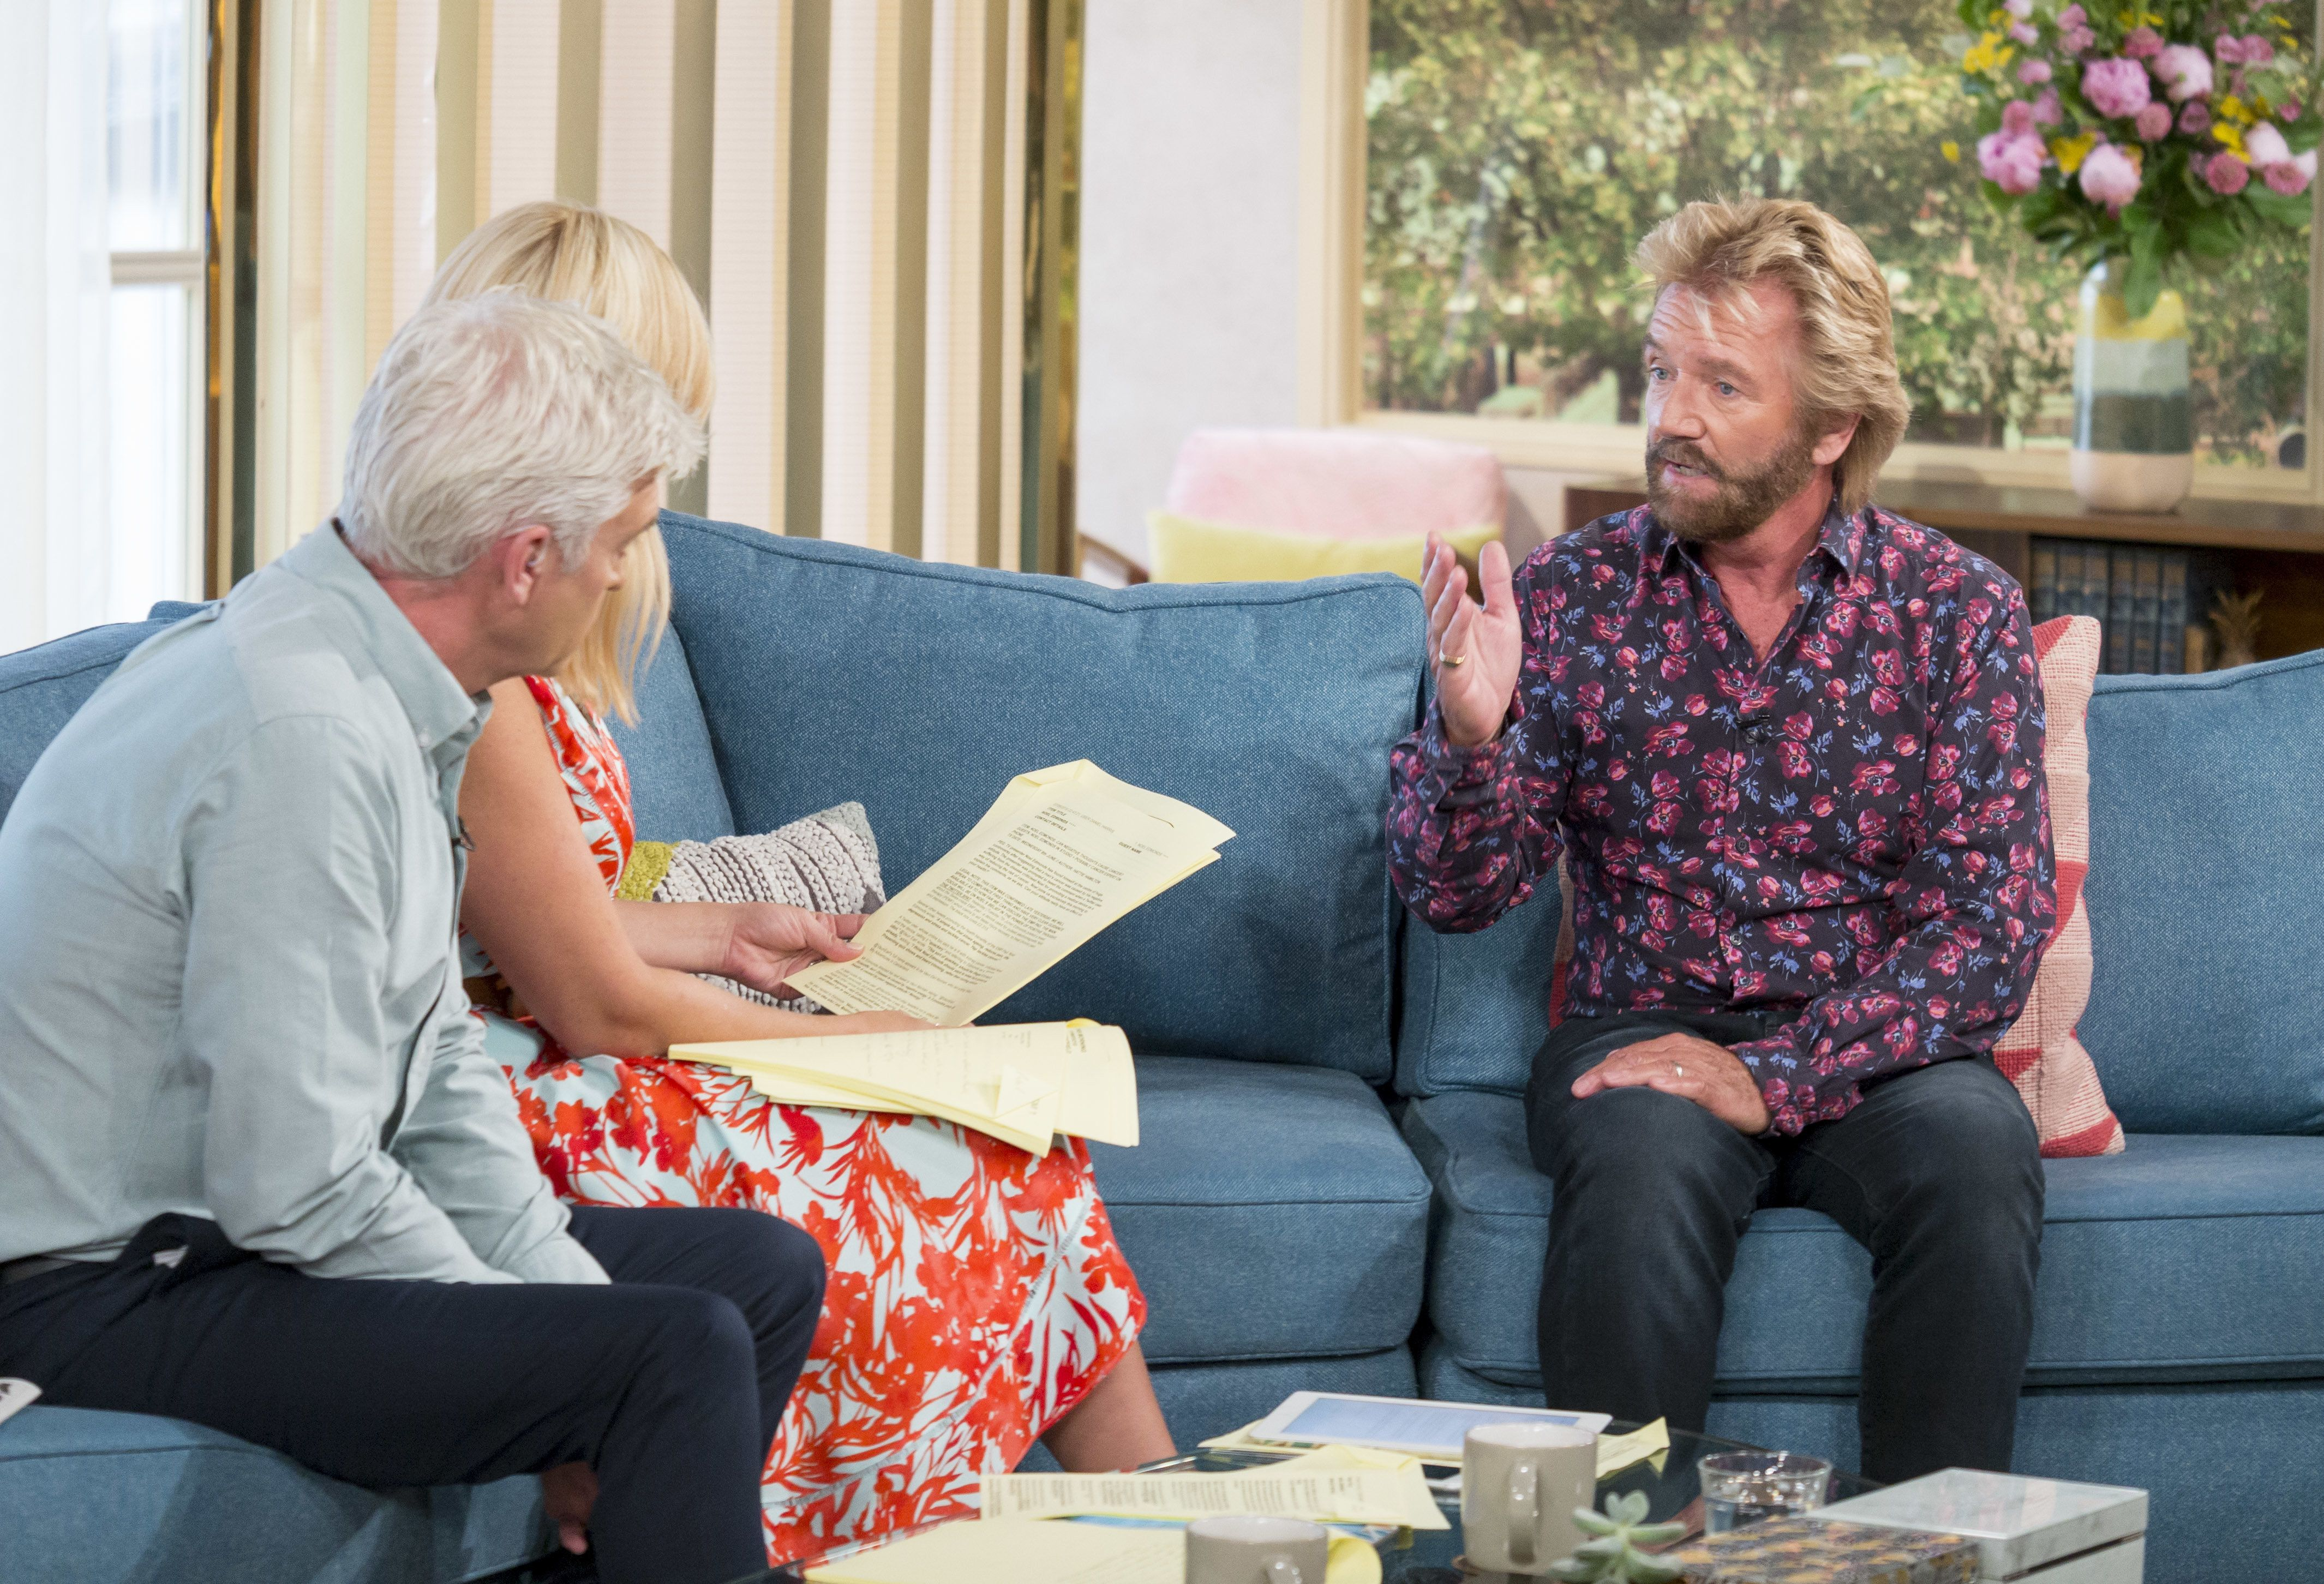 Noel Edmonds Reignites Phillip Schofield Feud, Months After 'This Morning' Clash